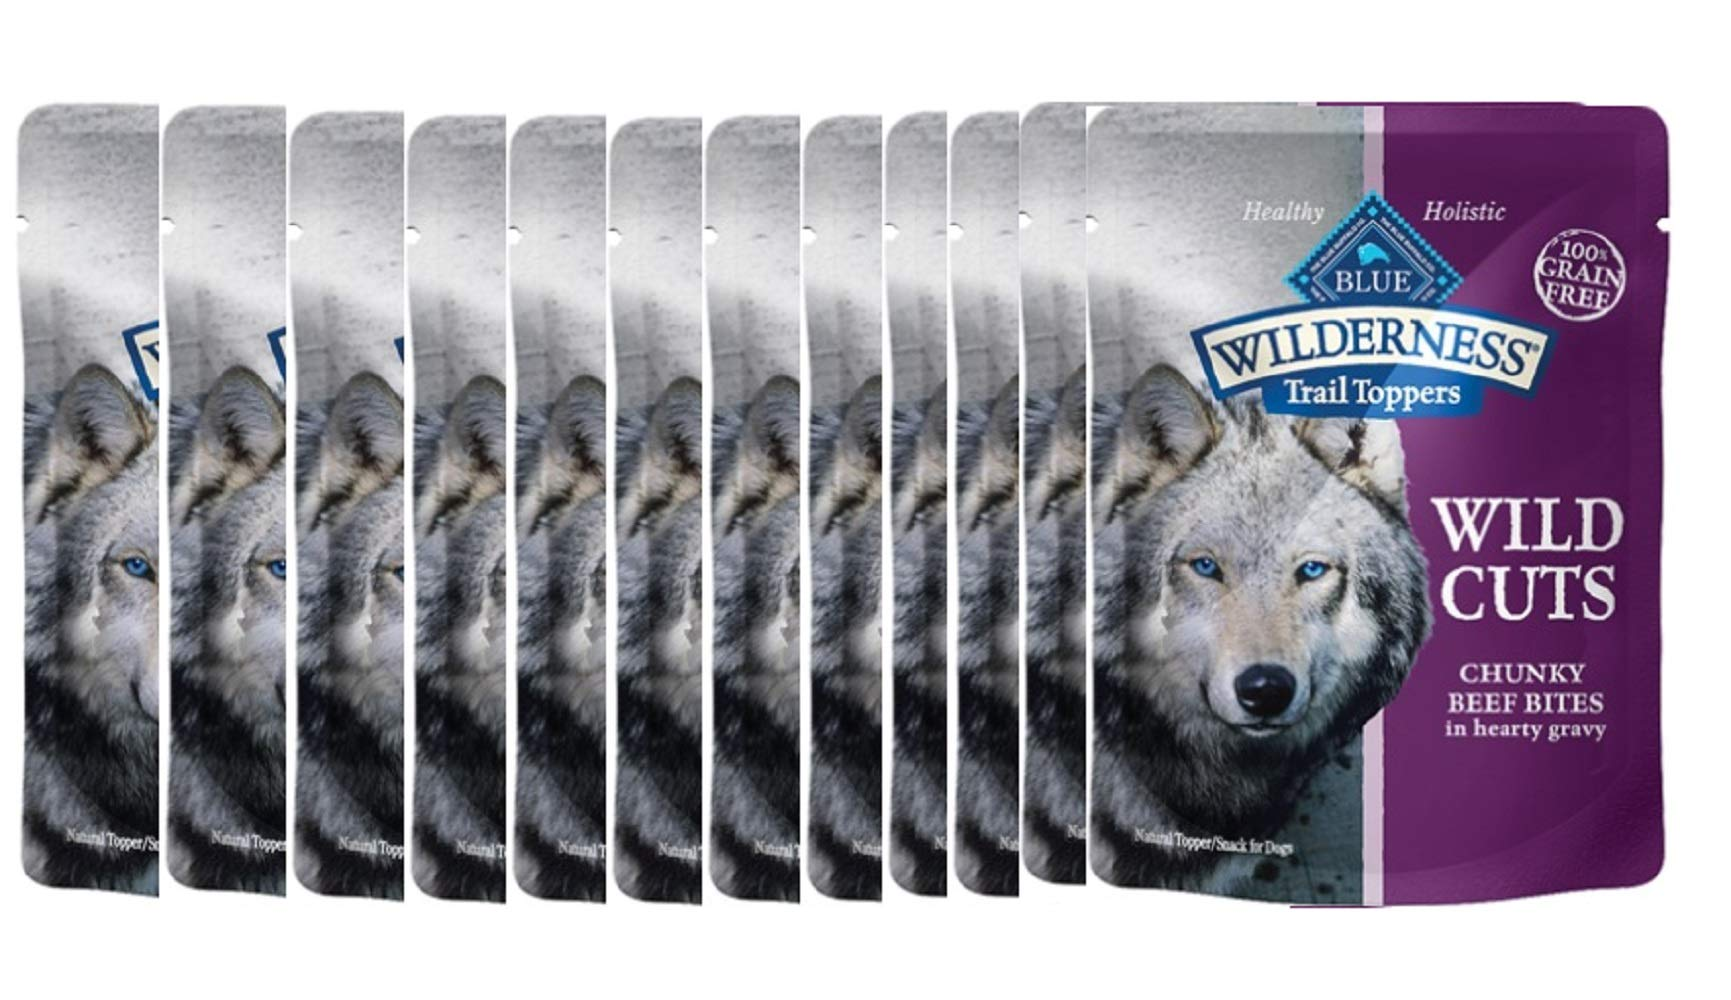 Trail Toppers Chunky Beef Bites Wet Adult Dog Food 3oz Pouches Grain-Free 12 Pack by Blue